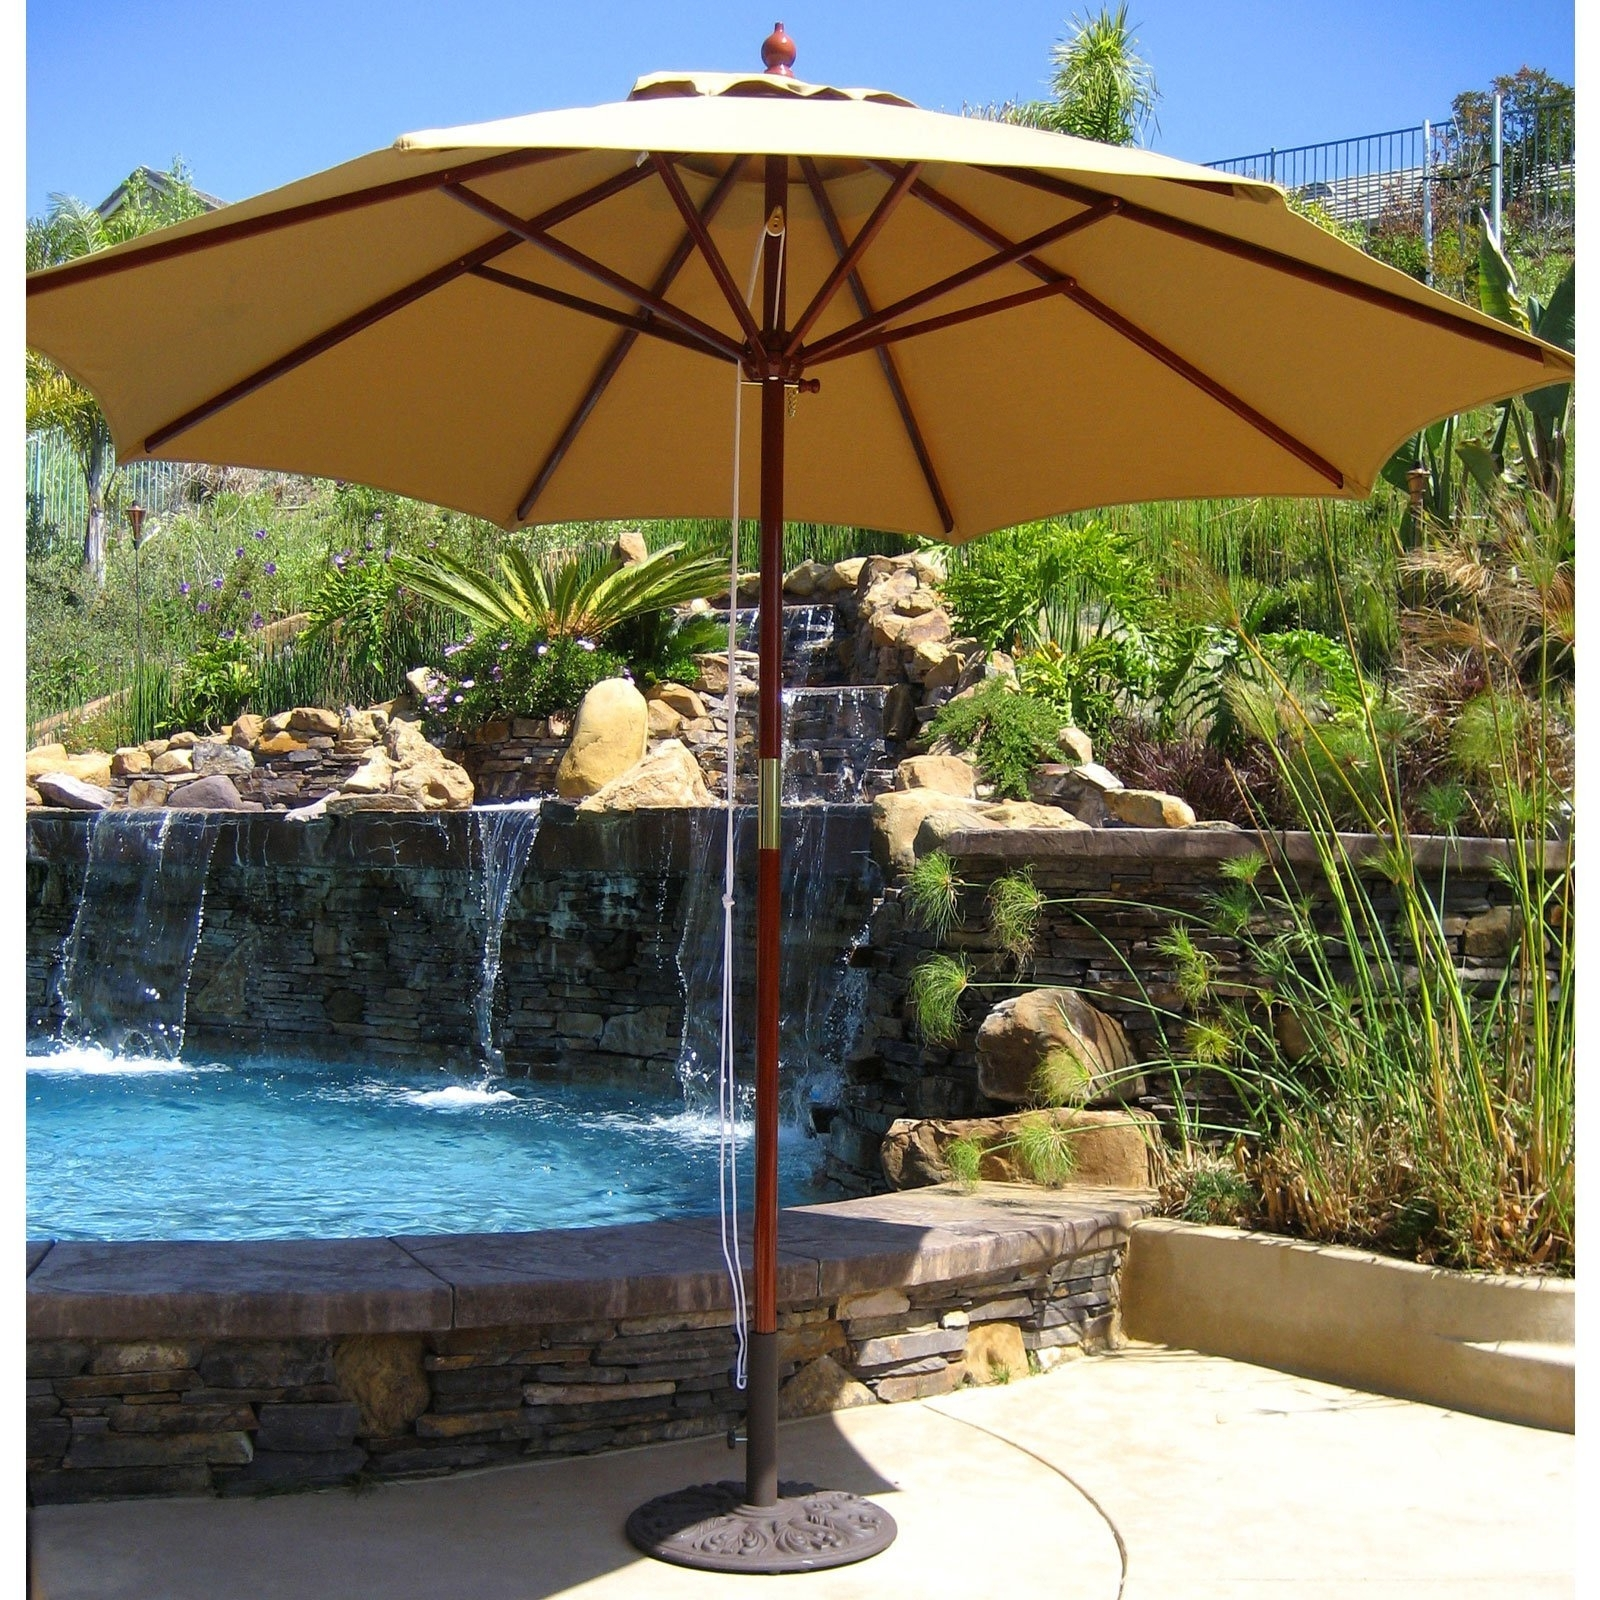 Startling Tweet Living Accents Round F Offset Umbrella At Ace Within Most Popular Costco Cantilever Patio Umbrellas (View 18 of 20)